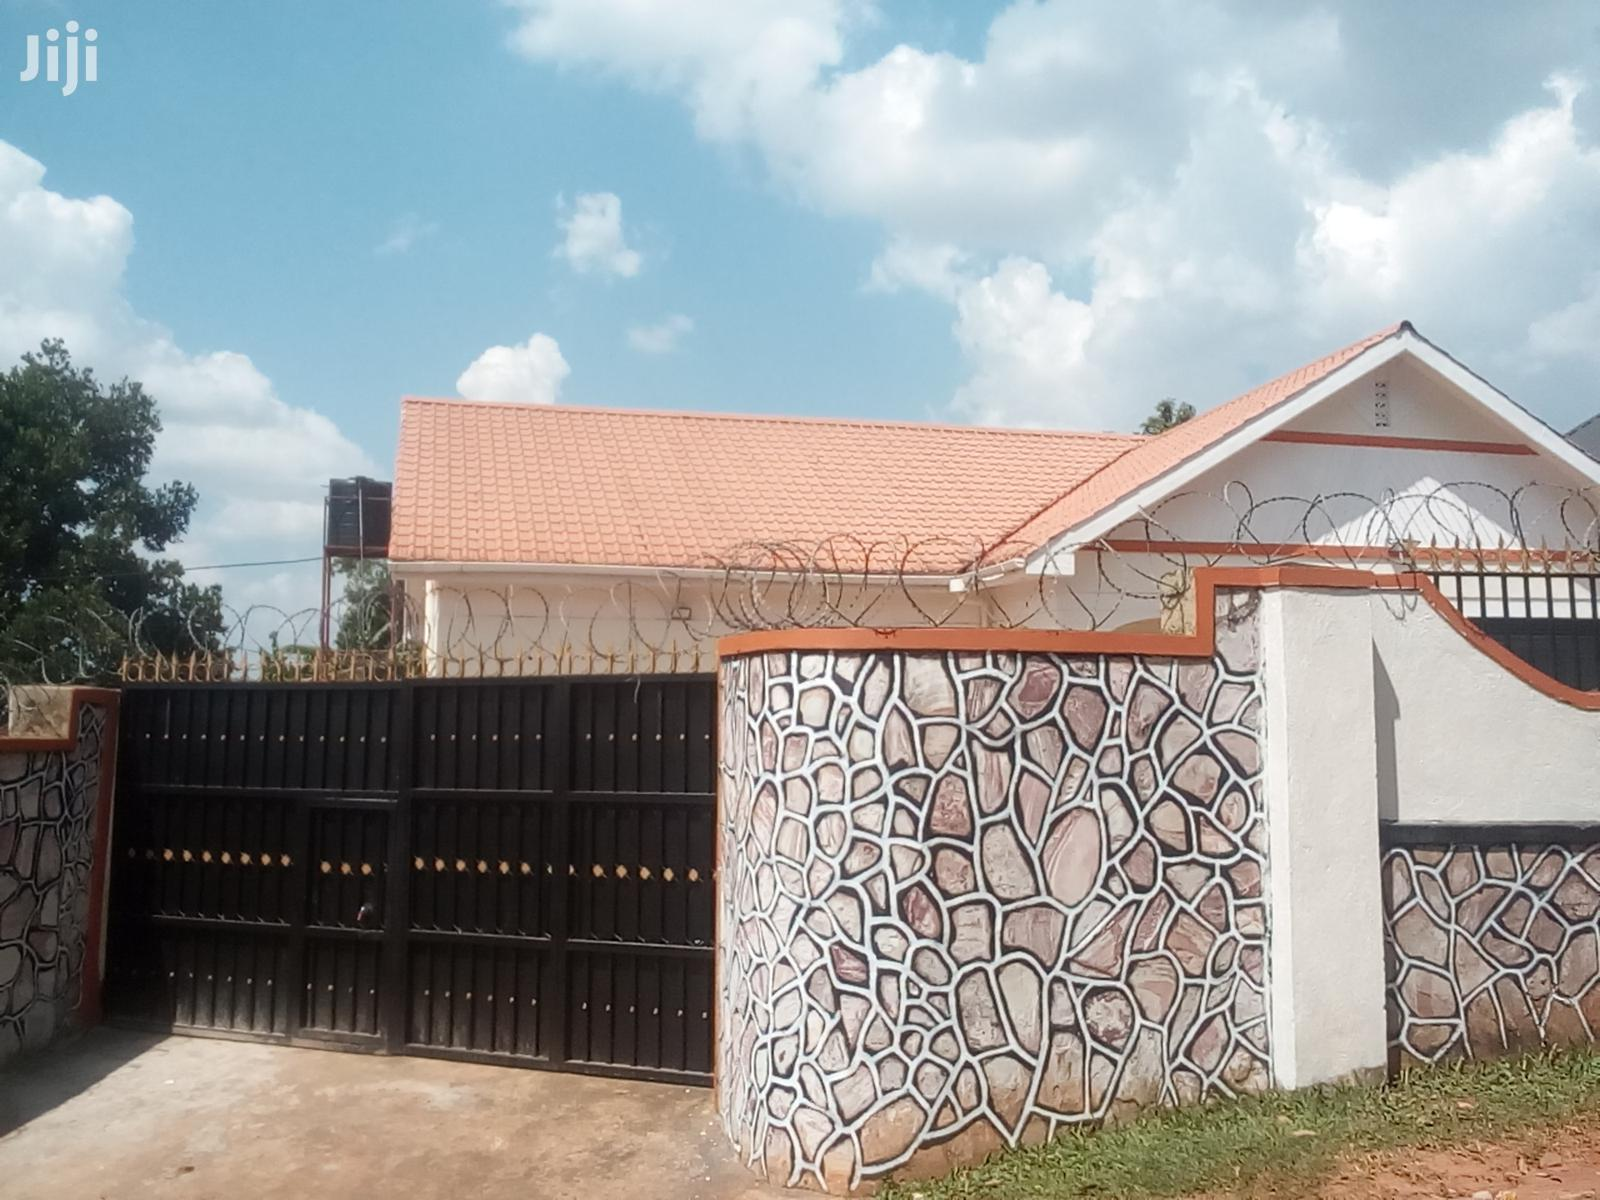 Three Bedroom House In Kirinya Bweyogerere For Rent | Houses & Apartments For Rent for sale in Kampala, Central Region, Uganda